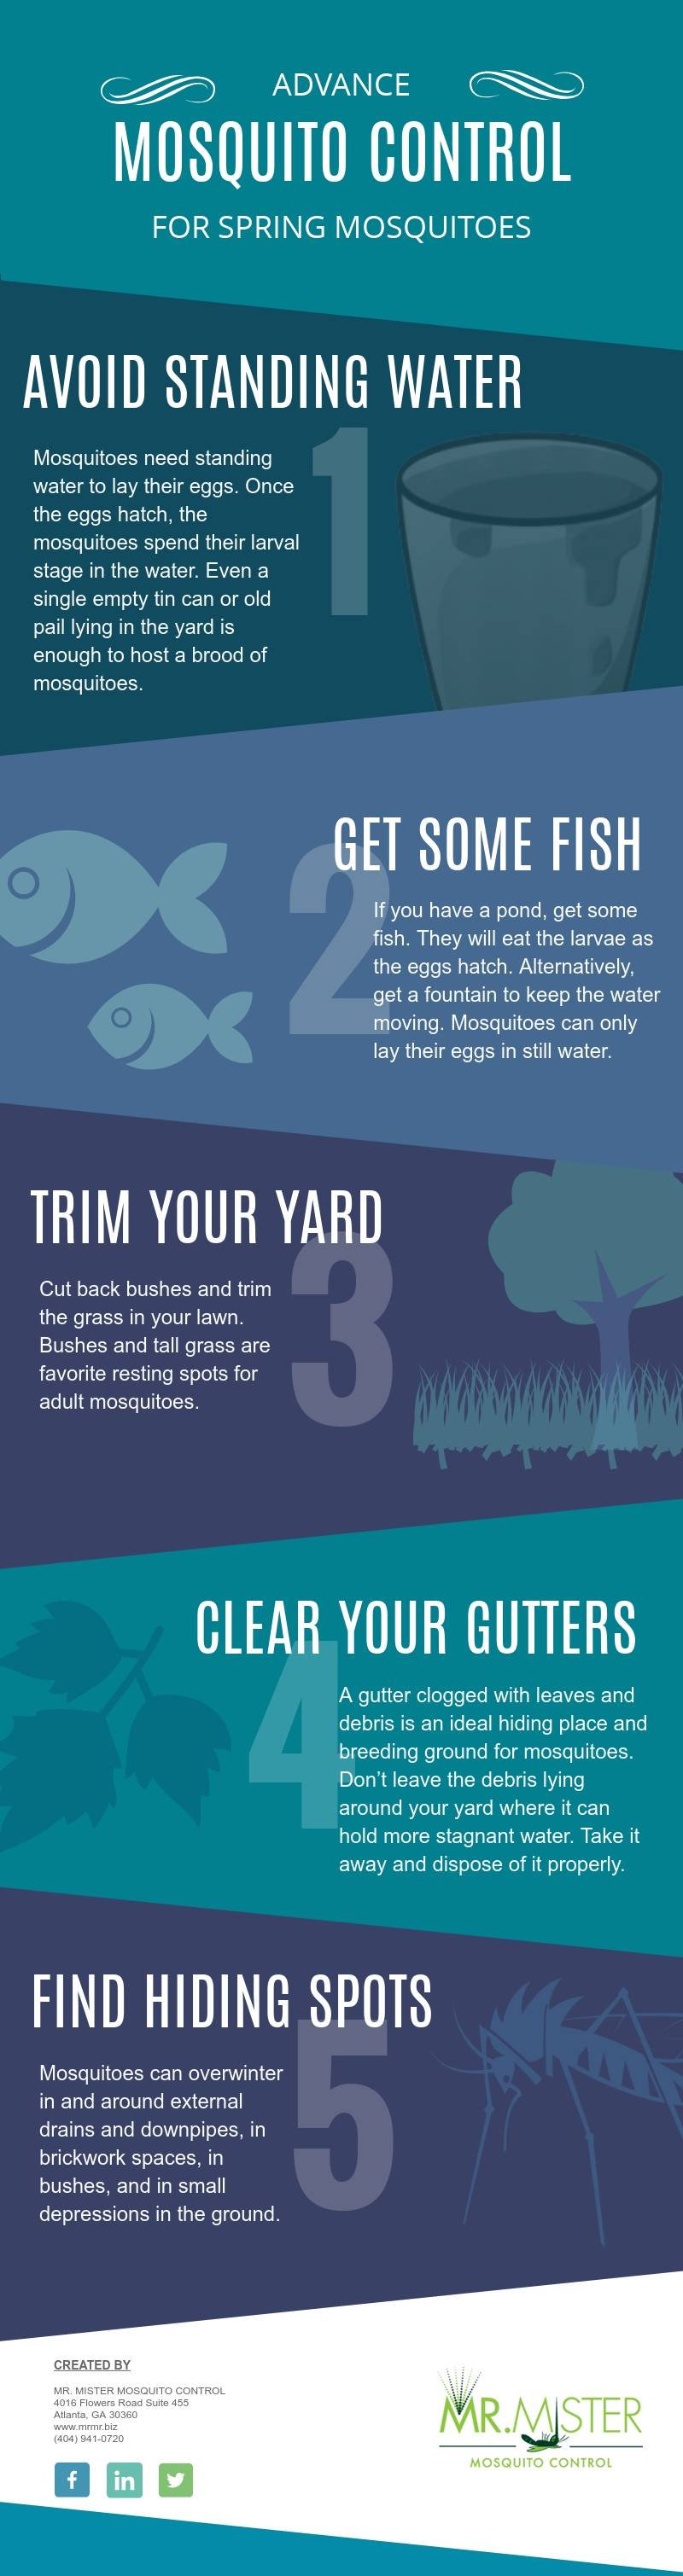 Advance Mosquito Control Systems for Spring Mosquitoes [infographic]